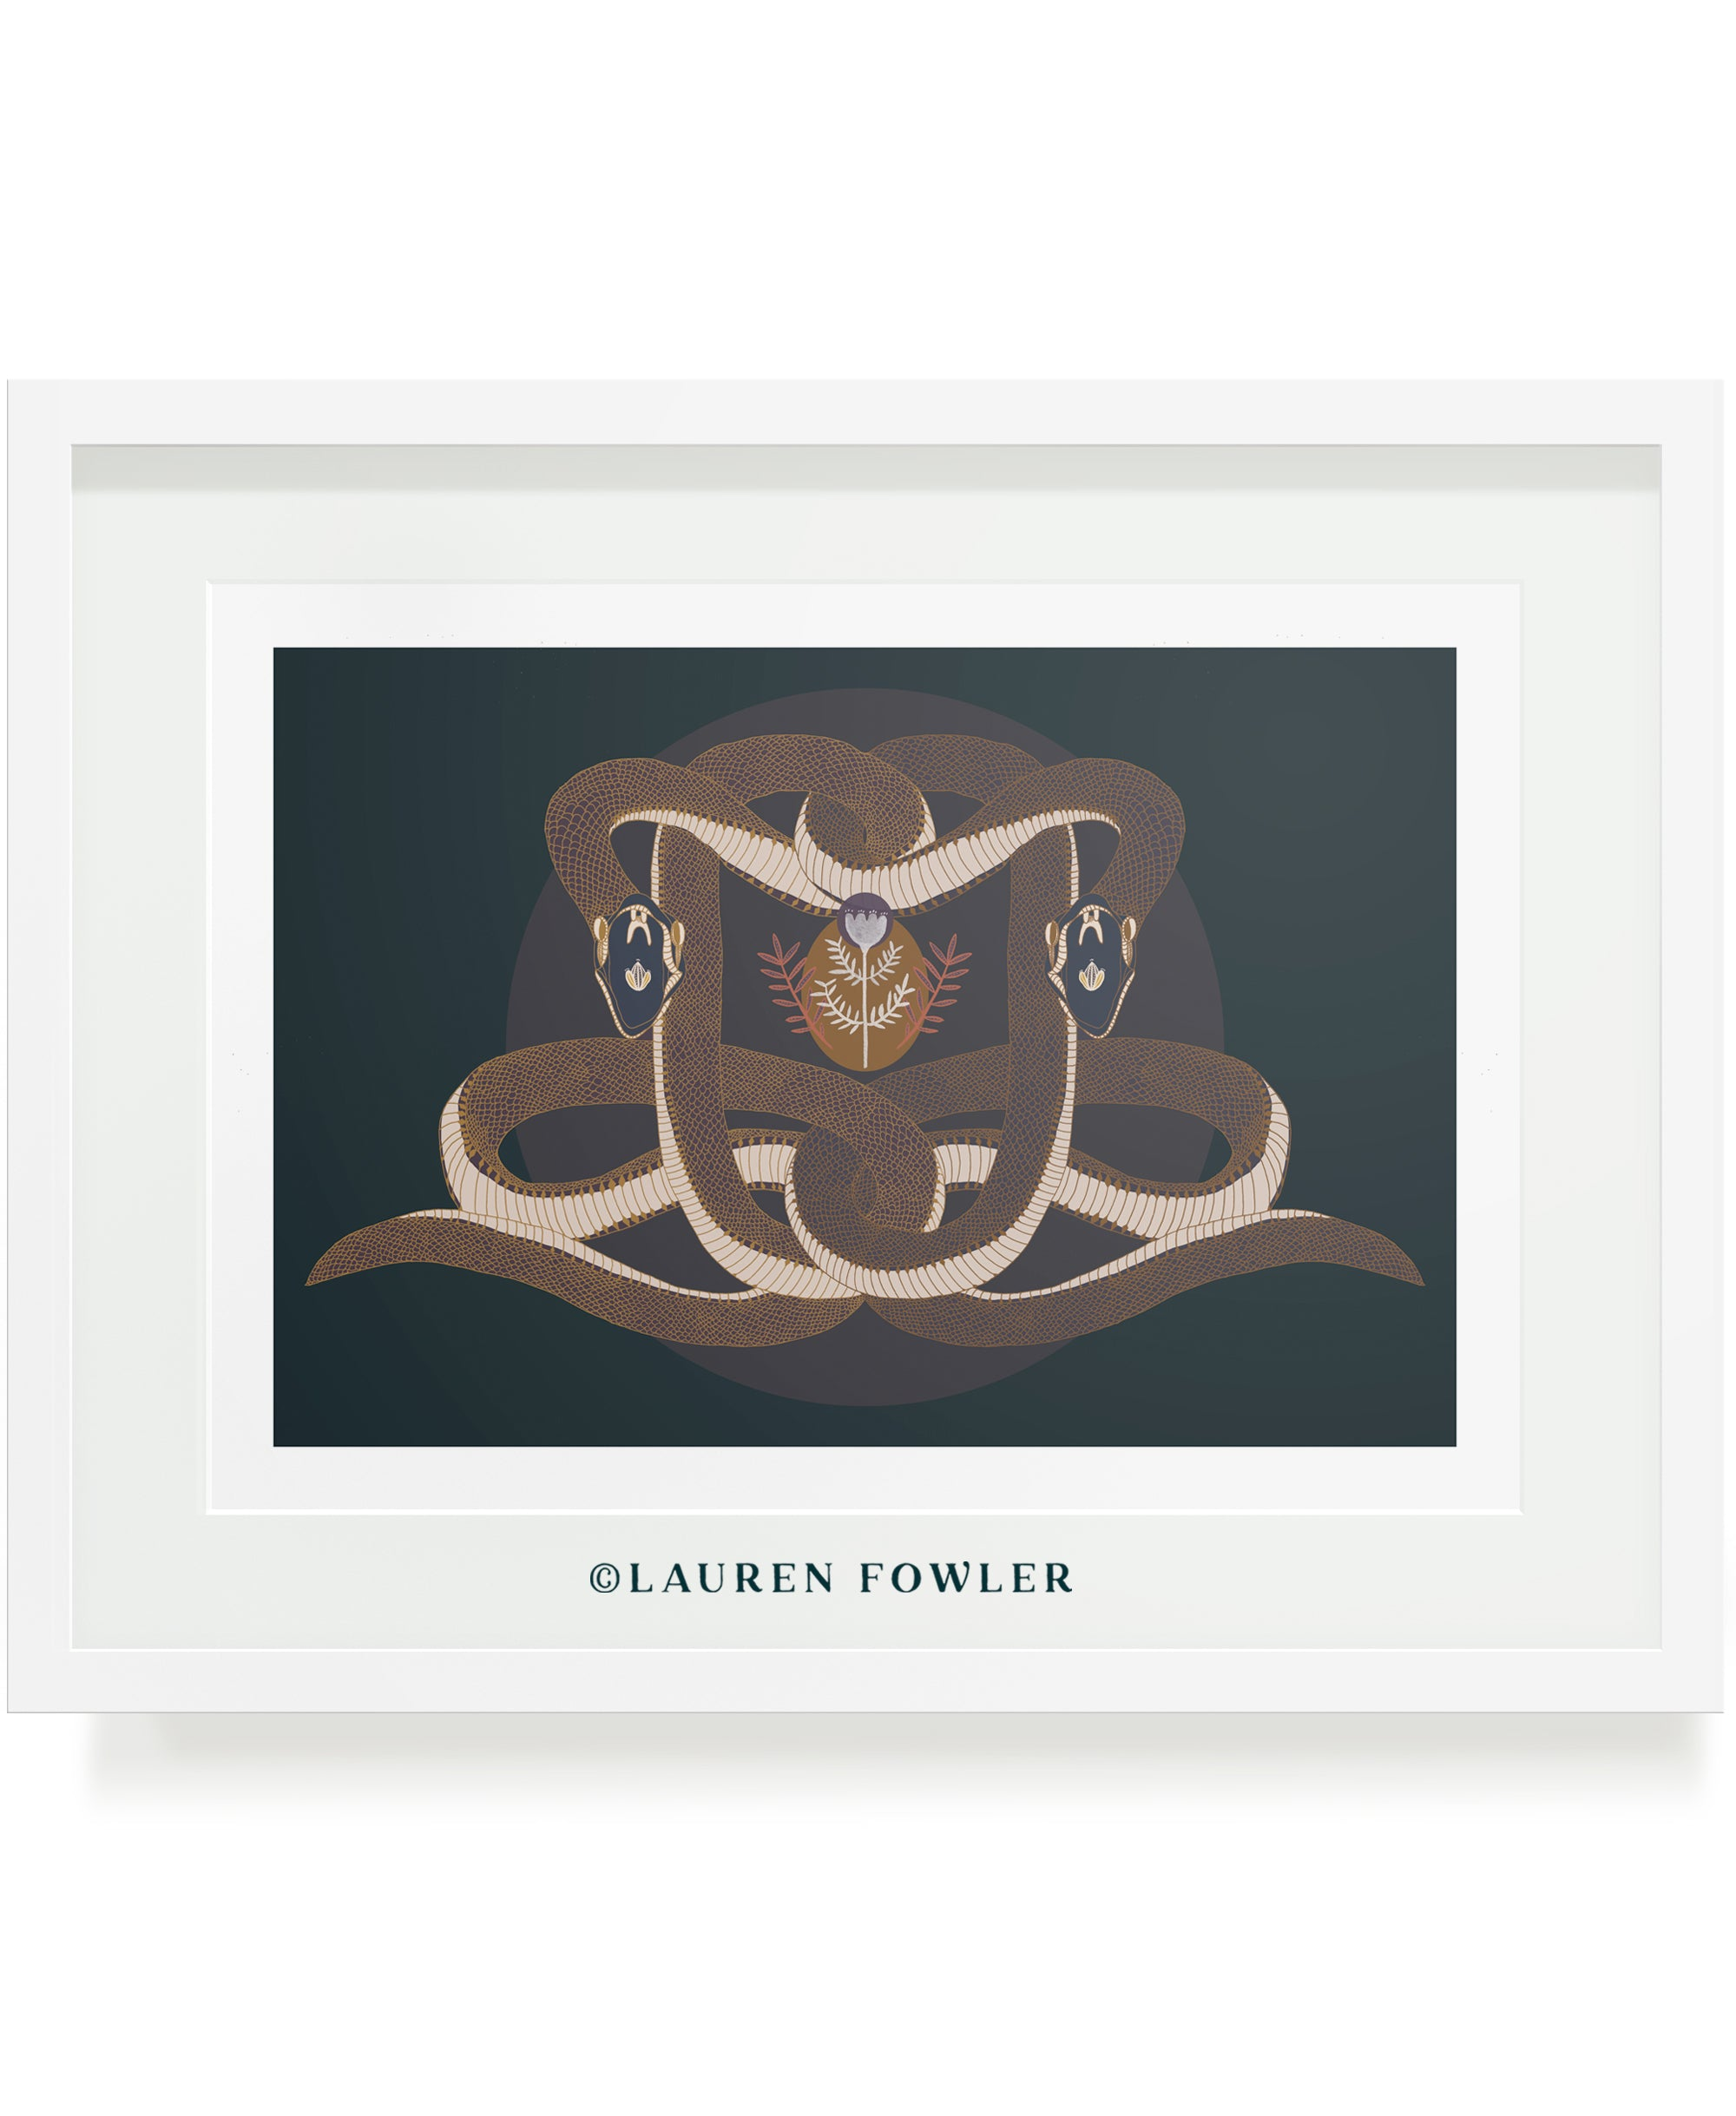 Intertwined illustrated artwork two snakes and flowers by Lauren Fowler